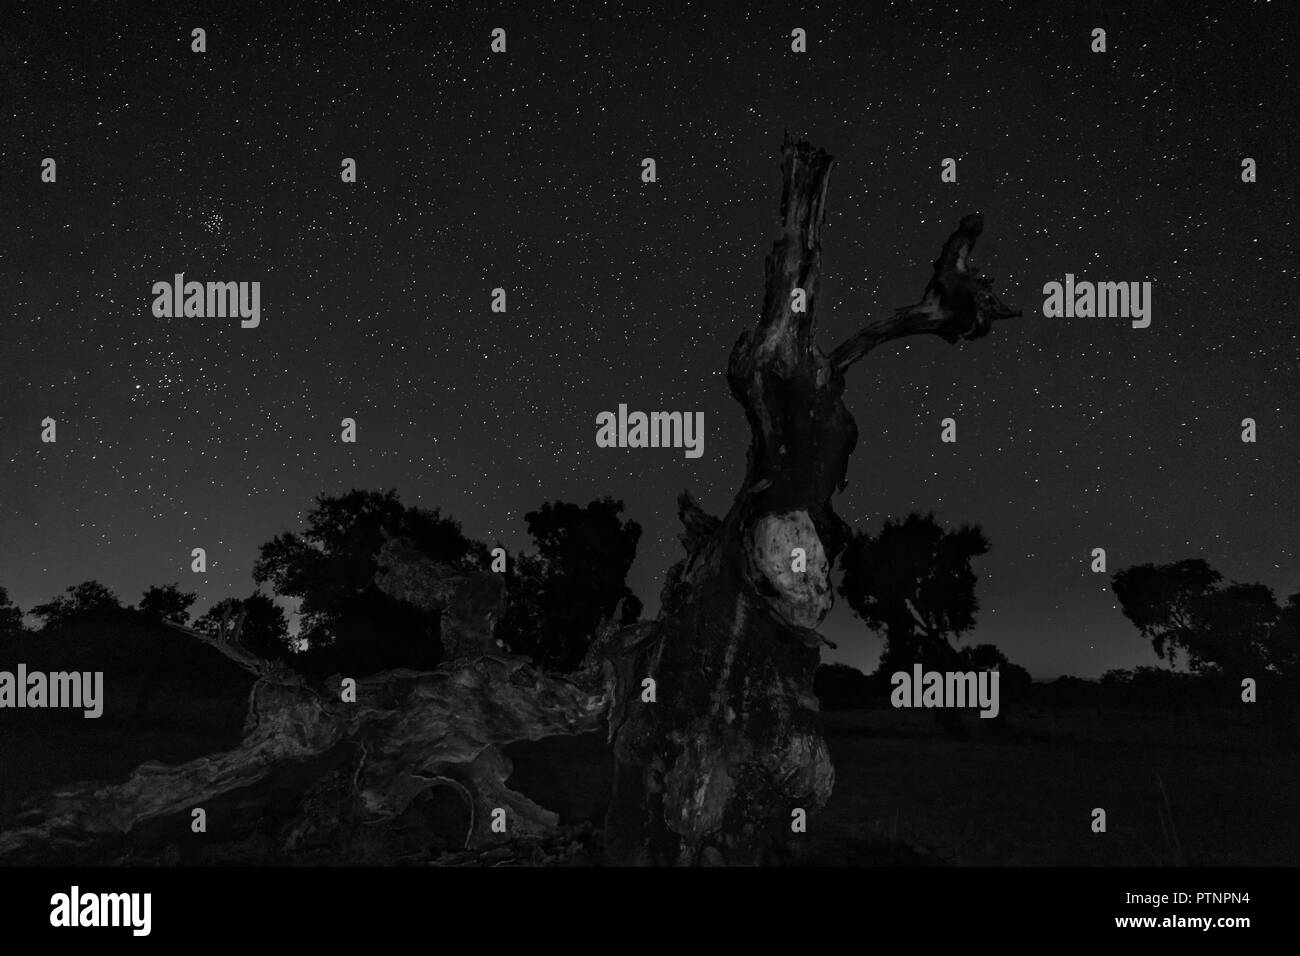 Night landscape with fallen tree in the foreground. - Stock Image